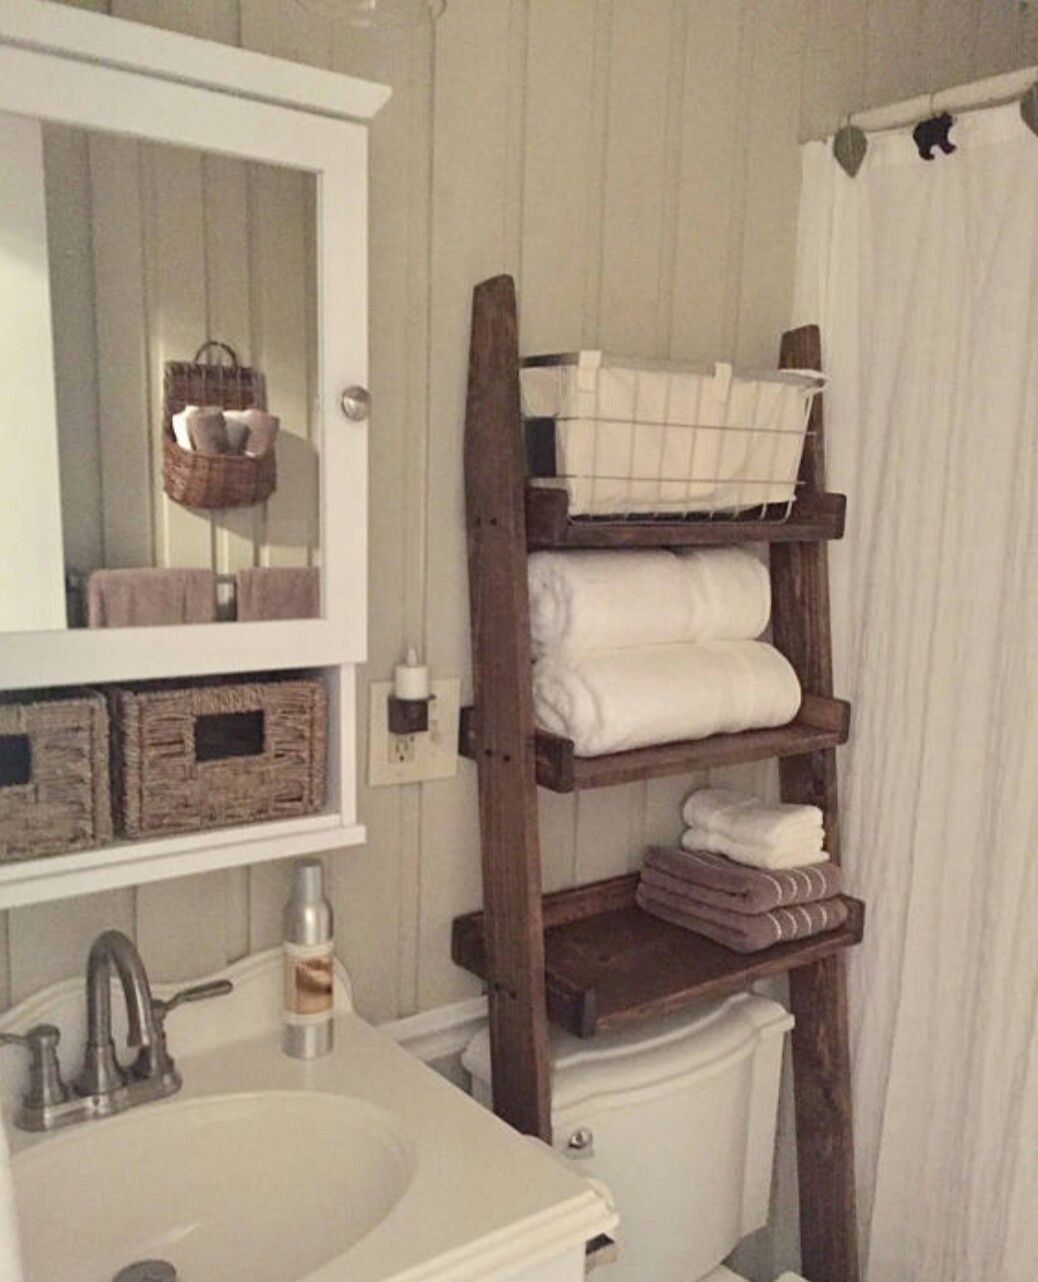 Over The Toilet Leaning Ladder Shelf Bathroom Space Saver Over The Toilet Ladder Small Bathroom Storage